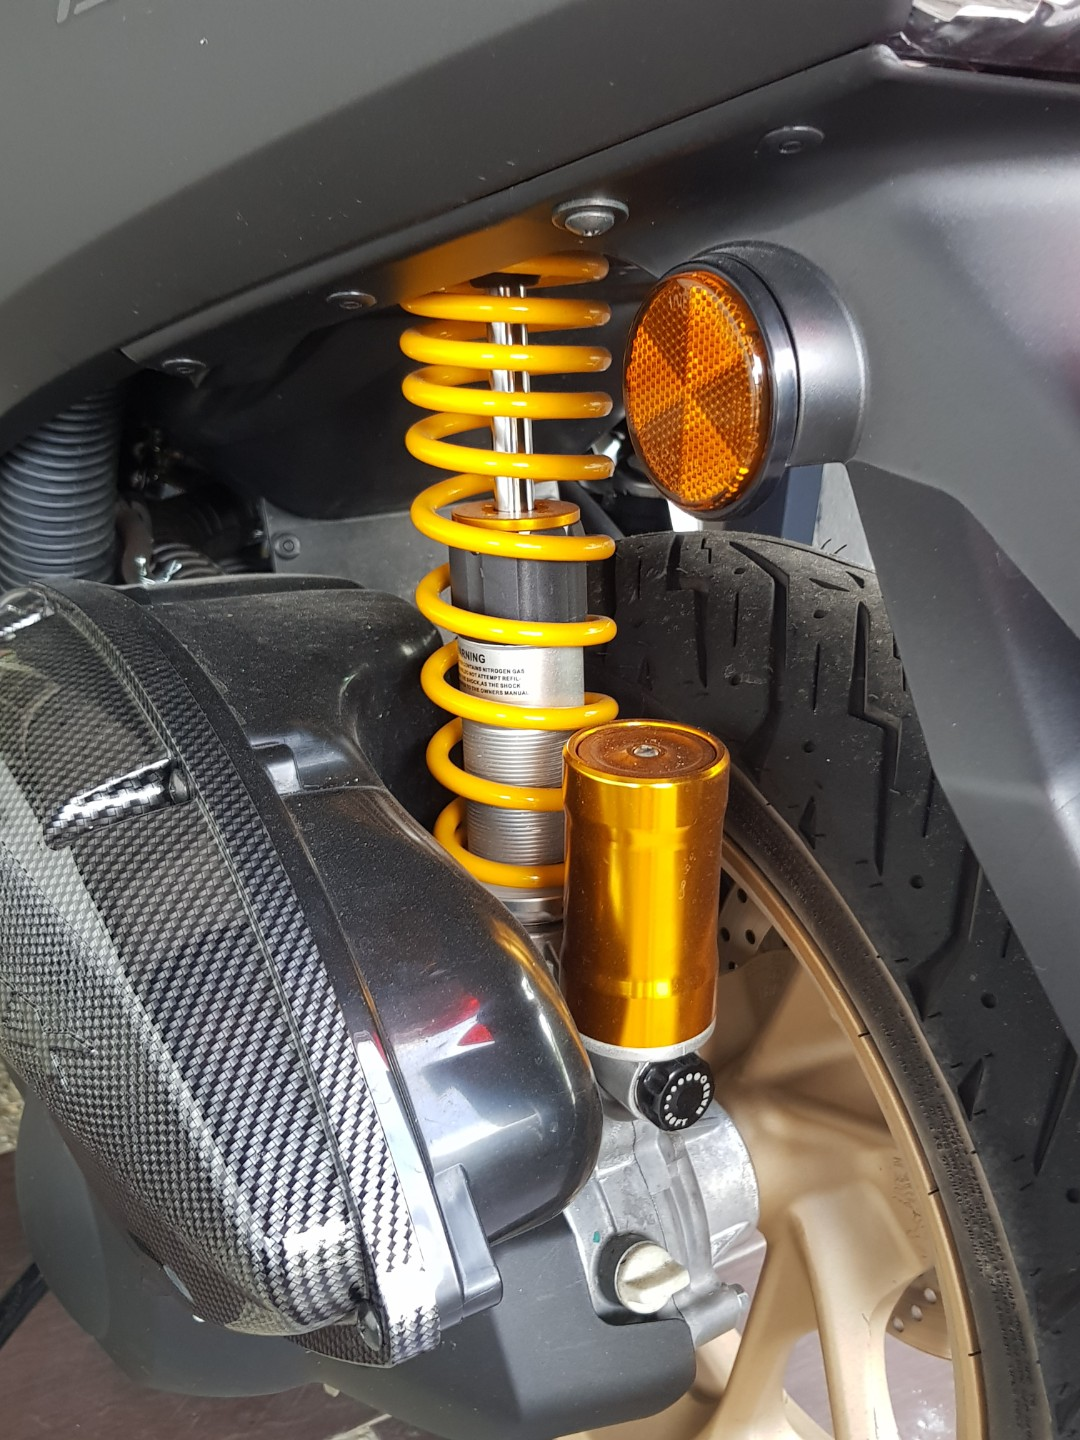 Ohlins For Yamaha Nmax Auto Accessories On Carousell Breket Holder Dan Lampu